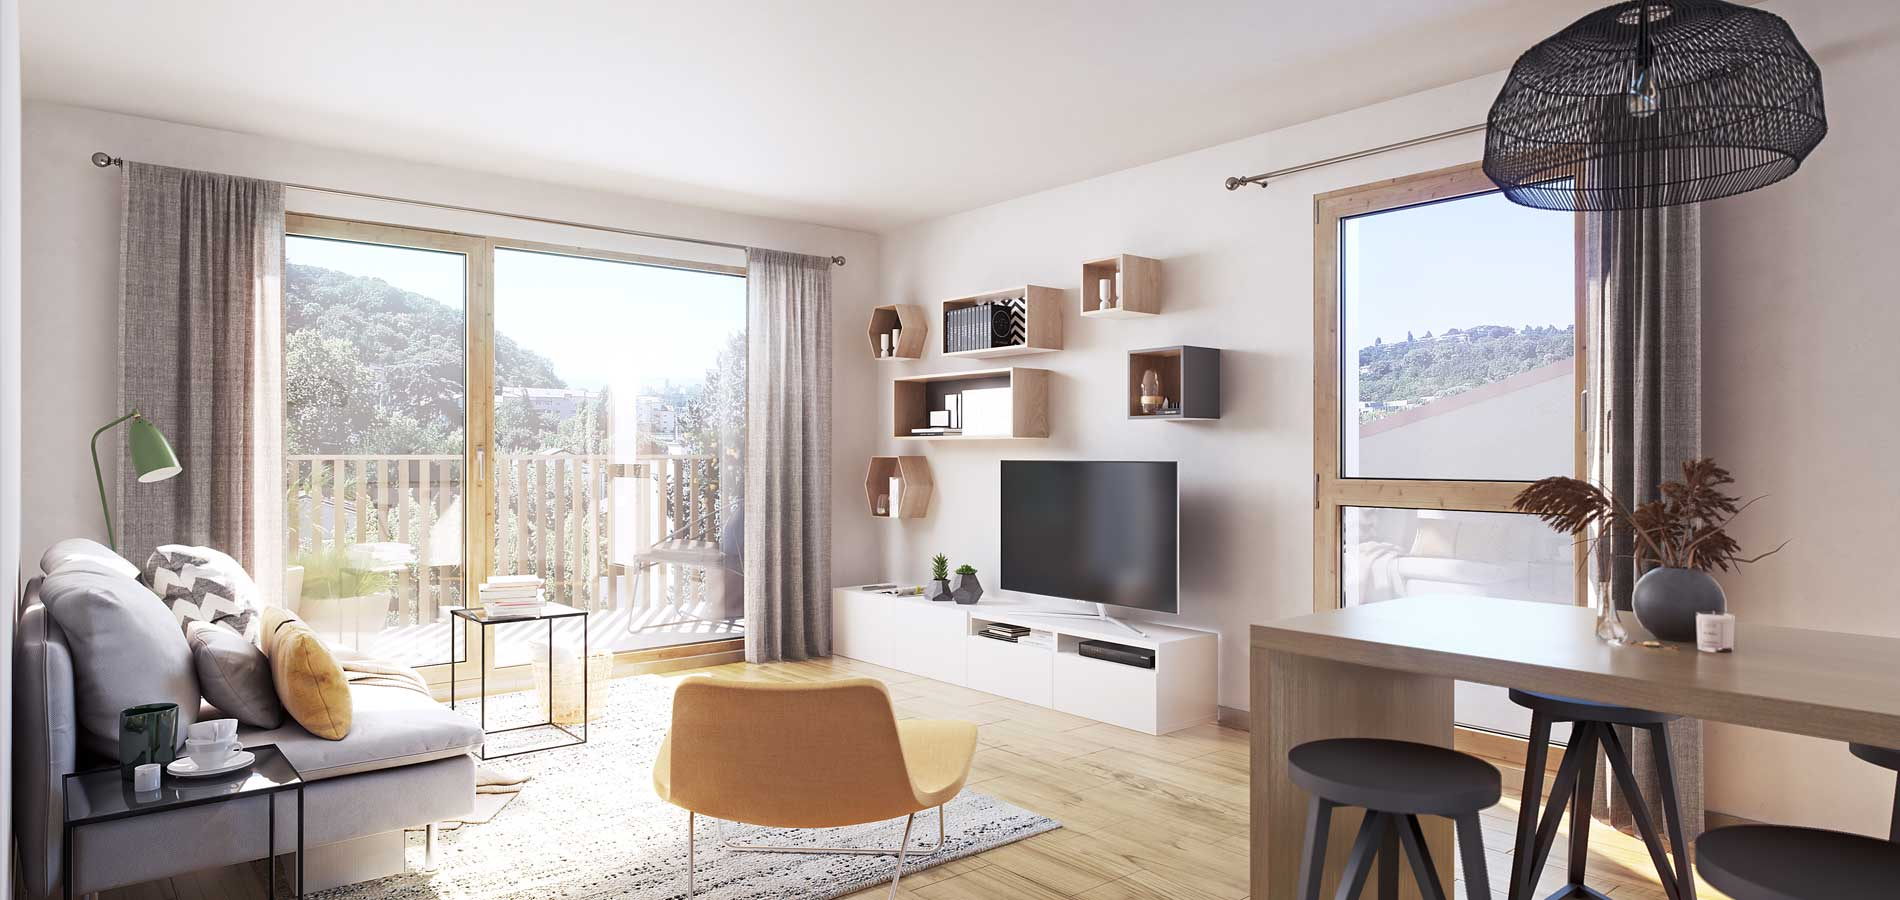 ideom-residence-idylle-interieur